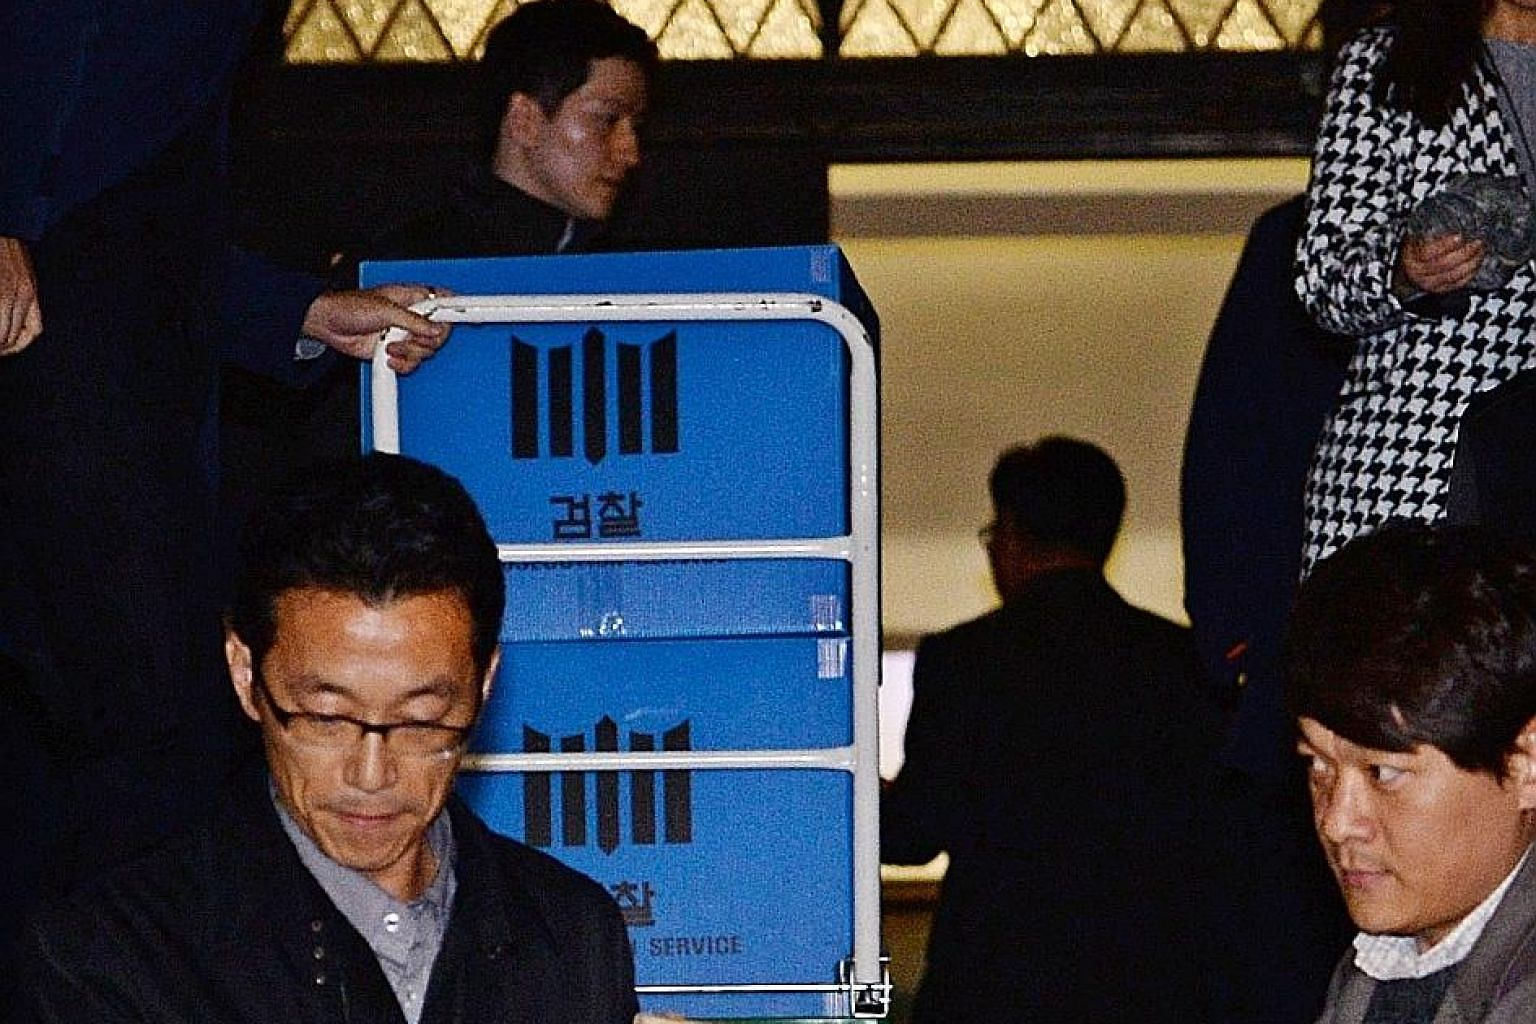 Prosecution investigators confiscating items from Ewha Womans University in Seoul yesterday during a raid amid allegations that the university gave unlawful favours to Choi's daughter.